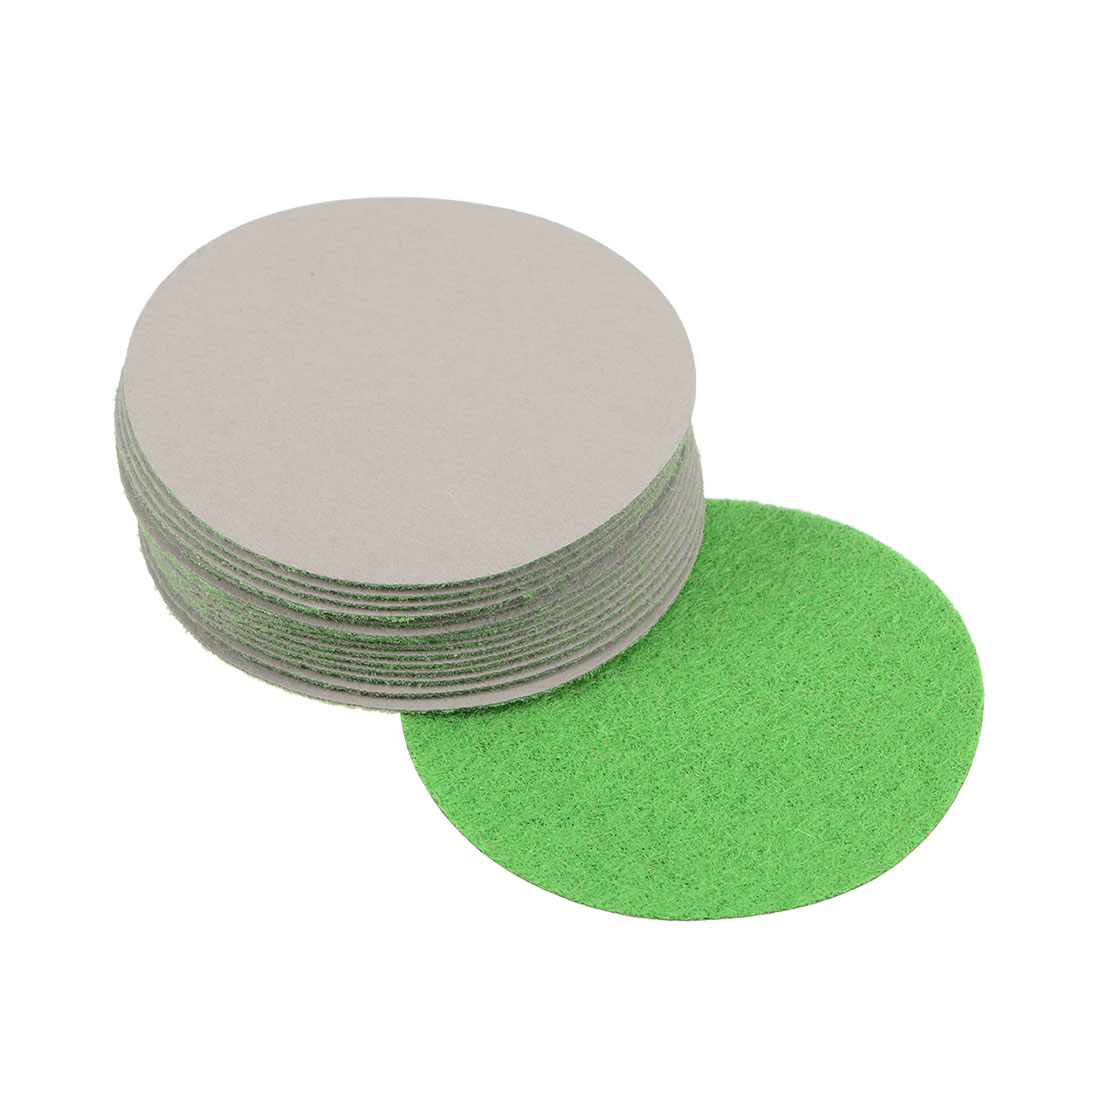 2 inch Wet Dry Discs 3000 Grit Hook and Loop Sanding Disc Silicon Carbide 15pcs